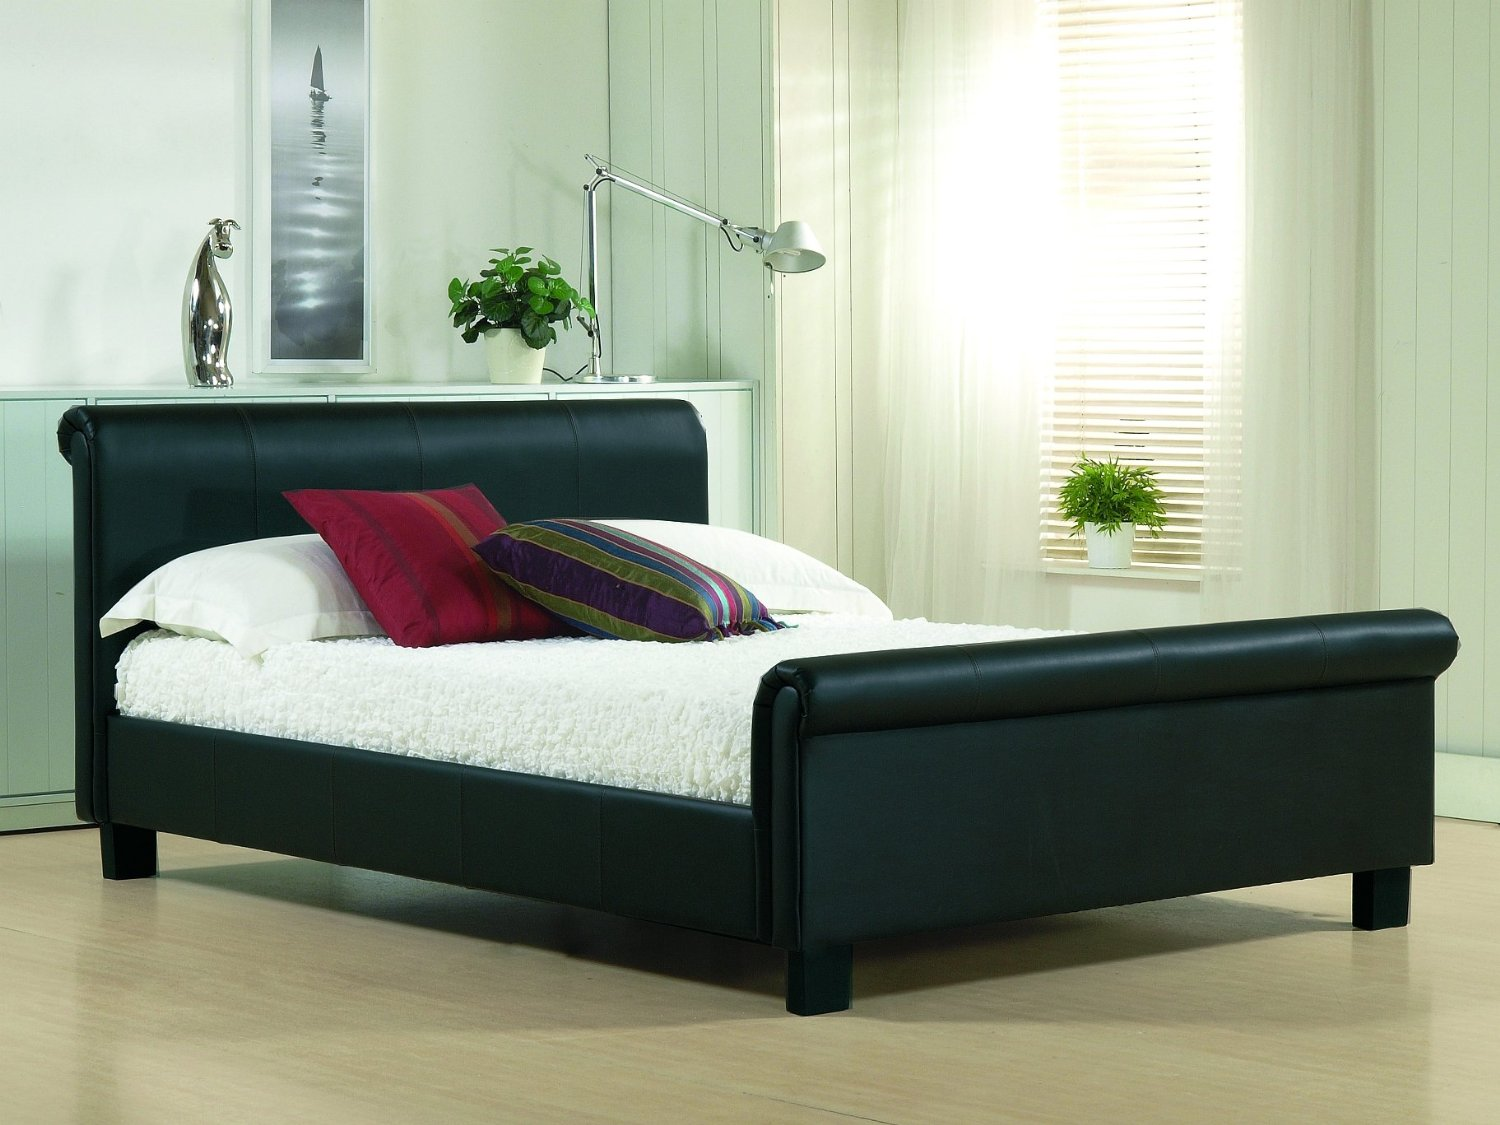 https://www.firstfurniture.co.uk/pub/media/catalog/product/8/1/81_2BgFhAthLL._SL1500_.jpg